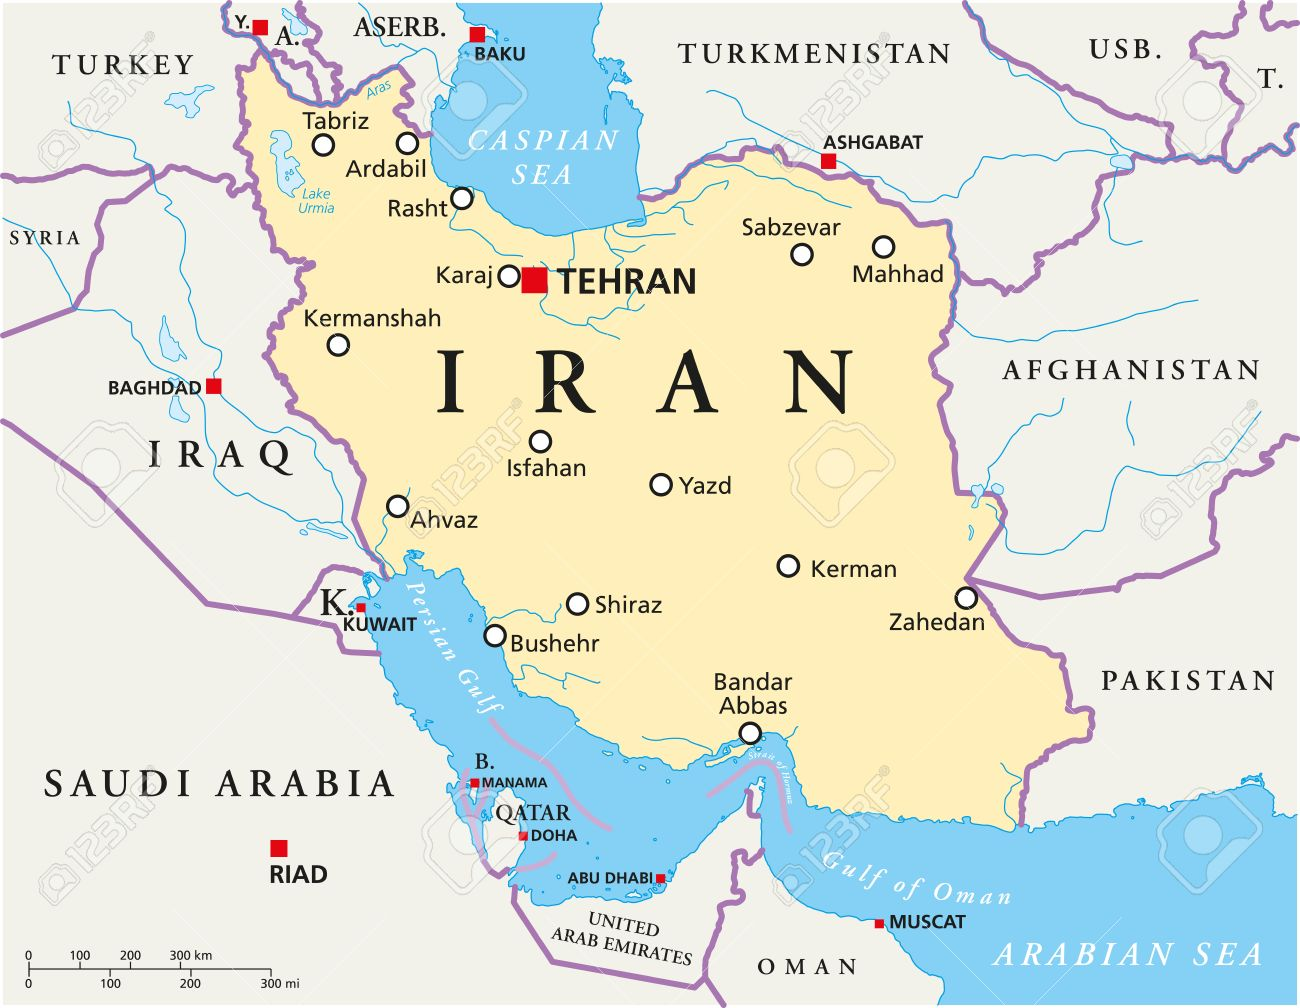 Iran Political Map With Capital Tehran National Borders Most